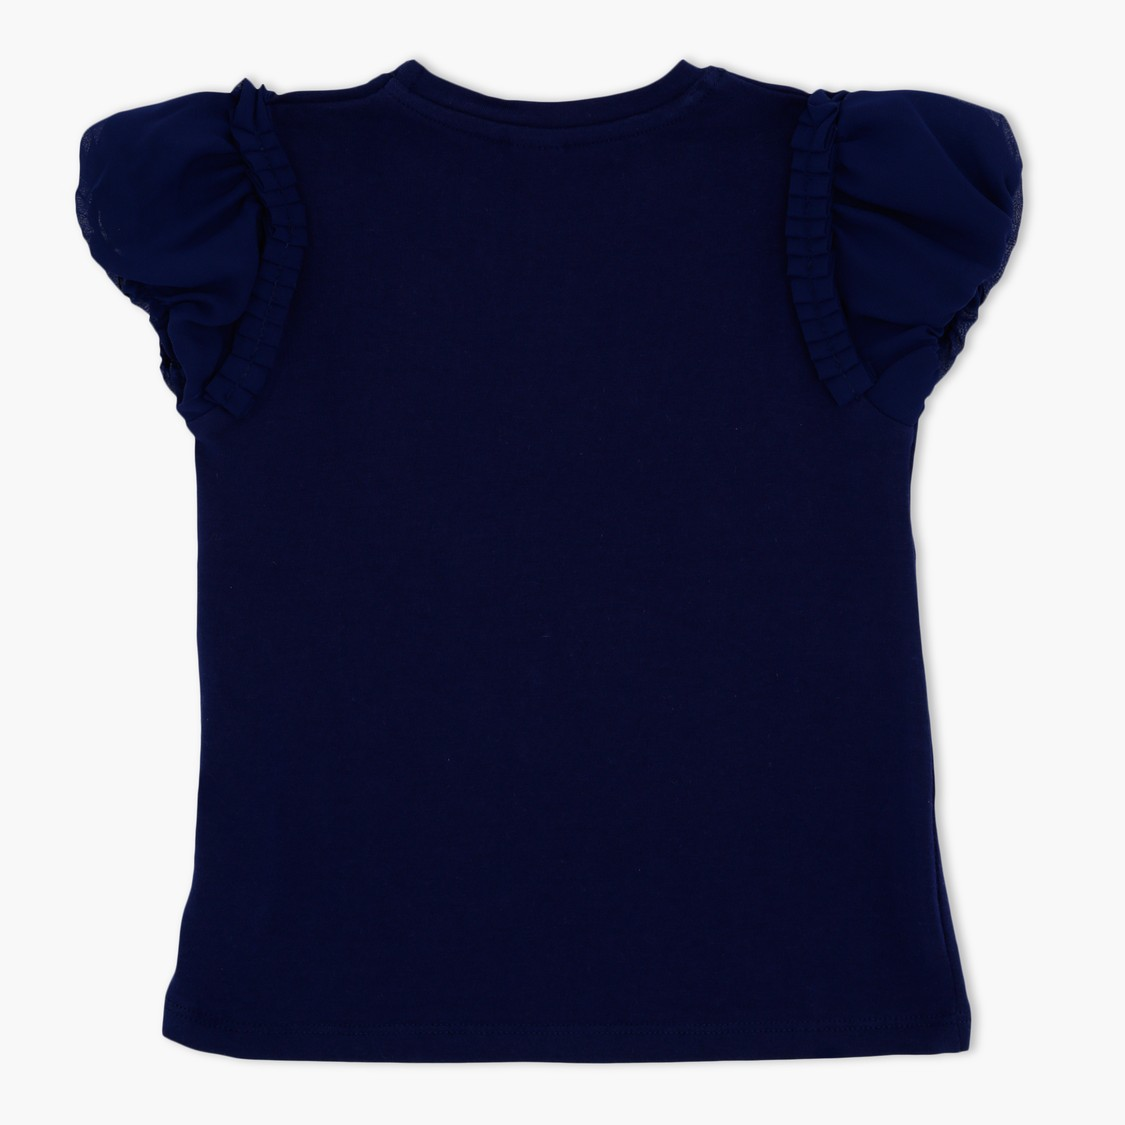 Embroidered Short Sleeves Round Neck T-Shirt